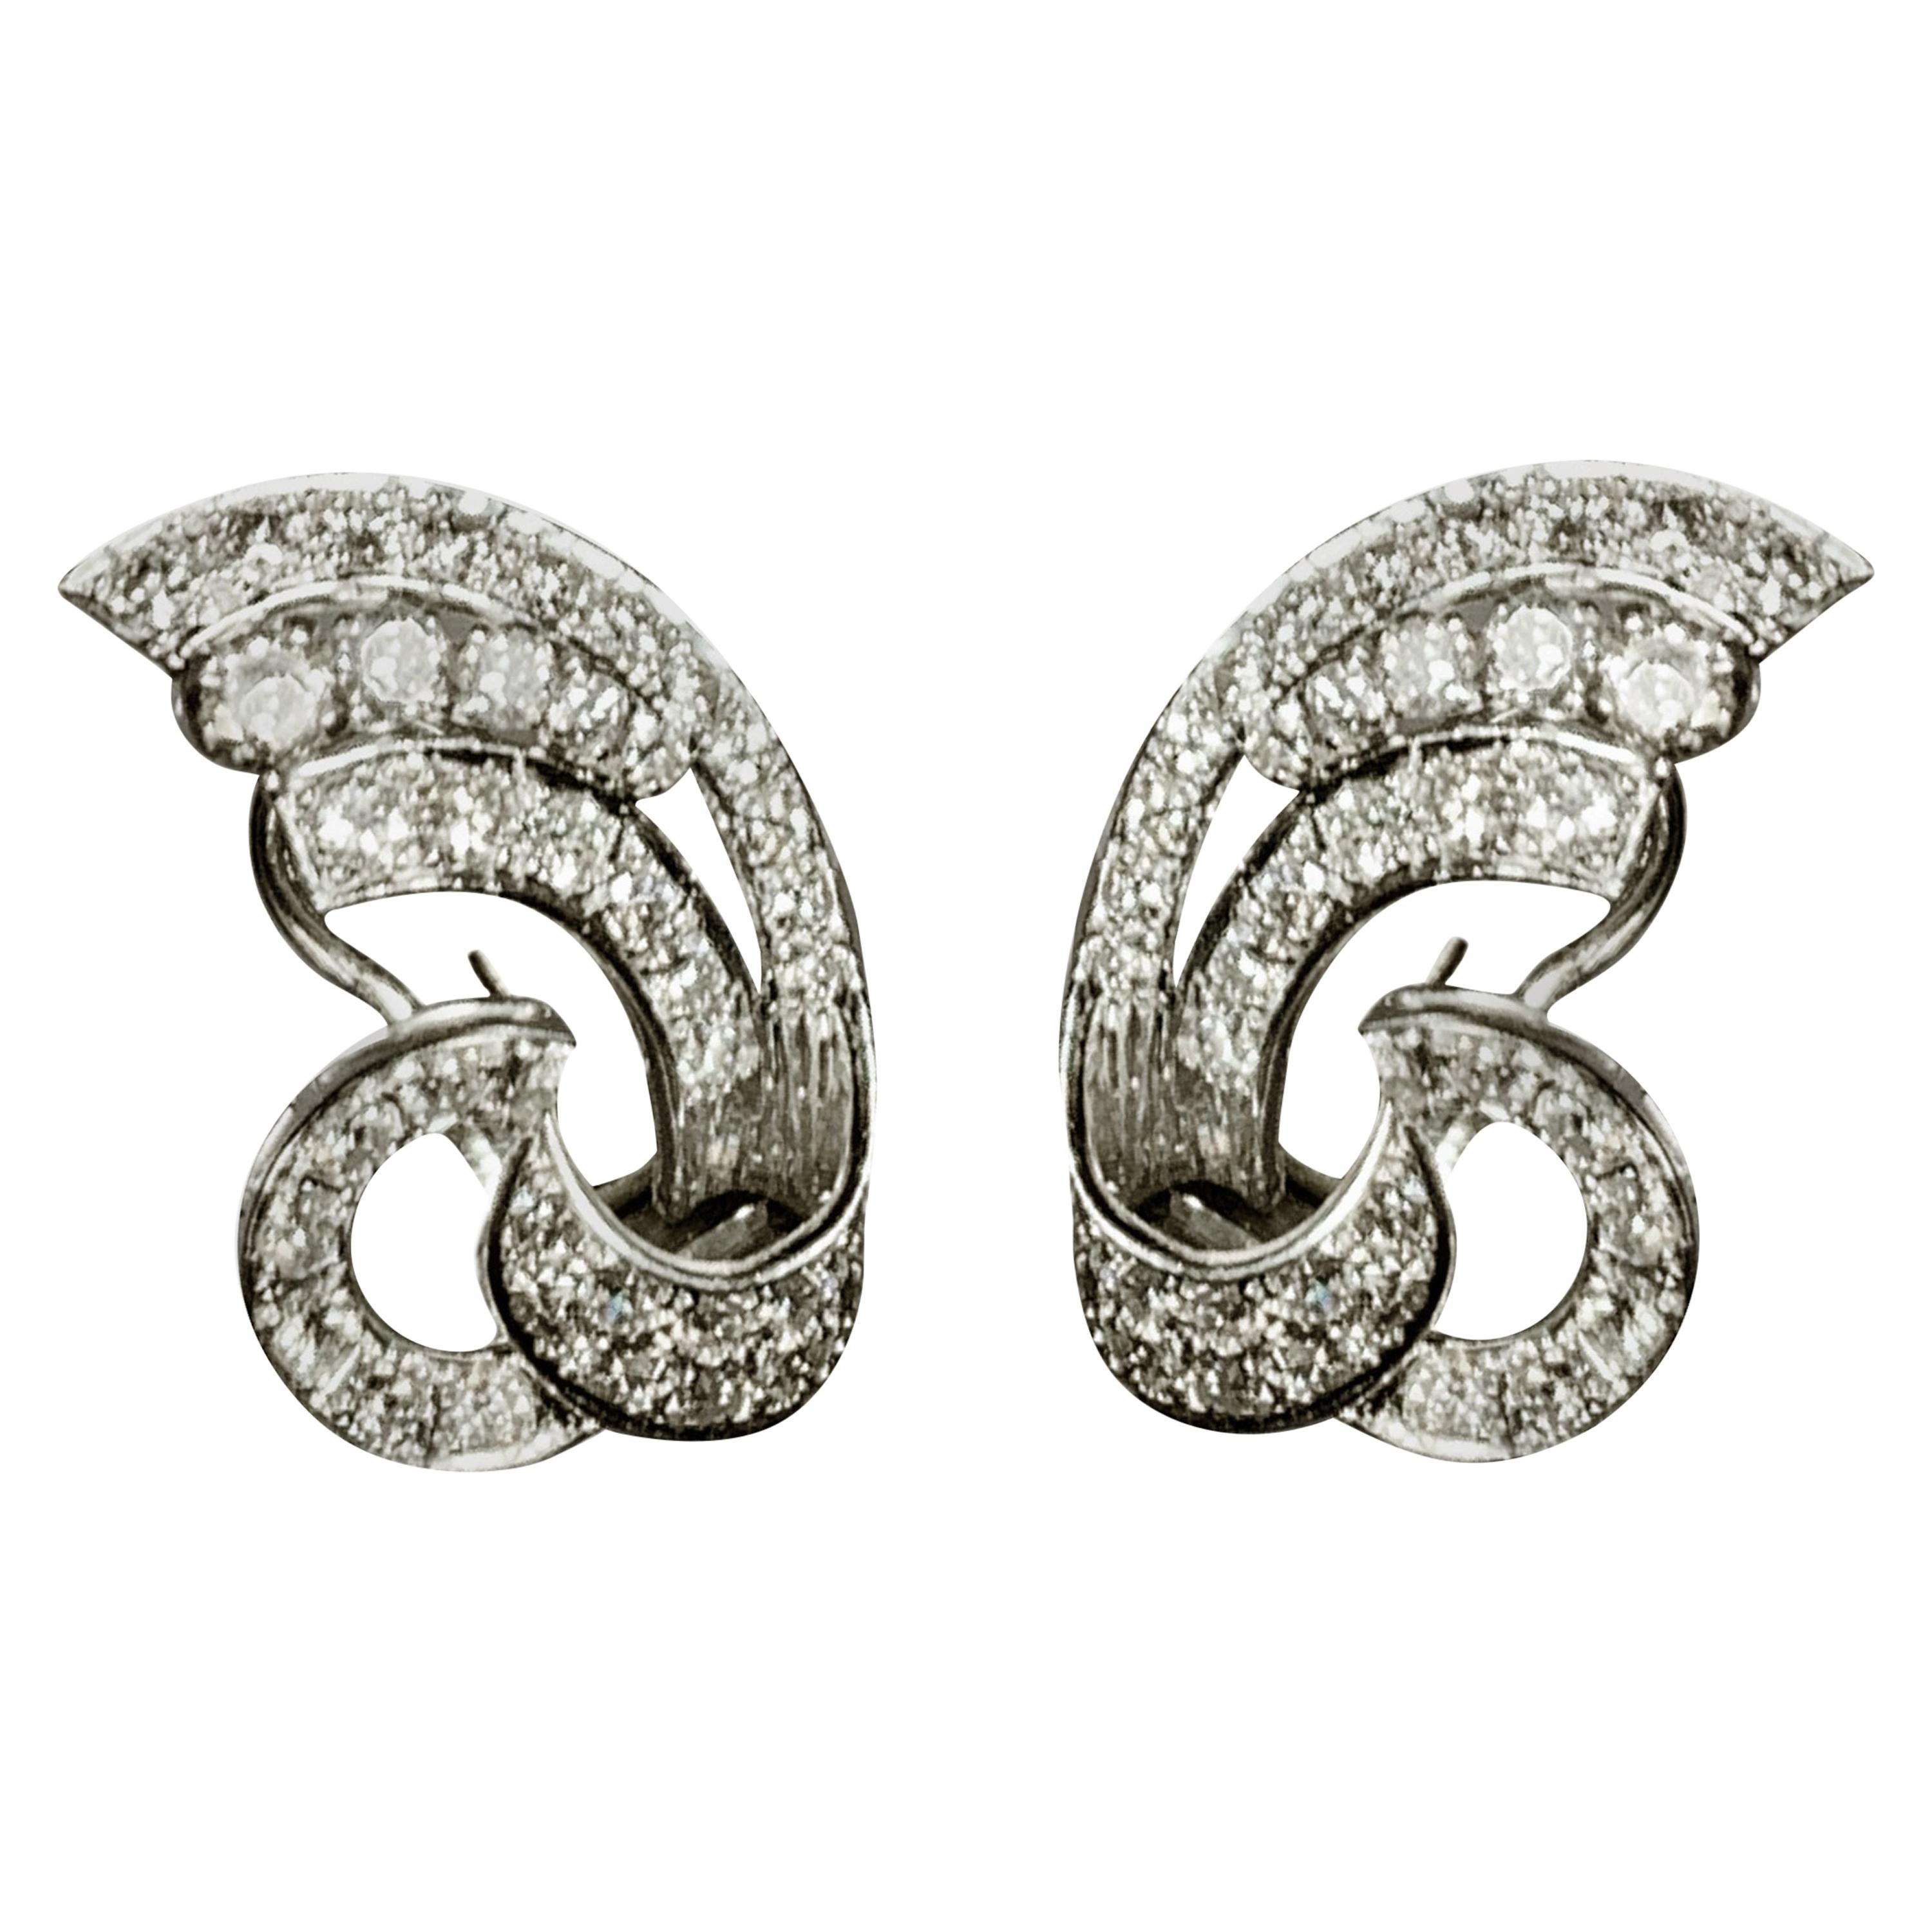 Vintage White Gold  Earrings with Diamonds Dolce Vita Style